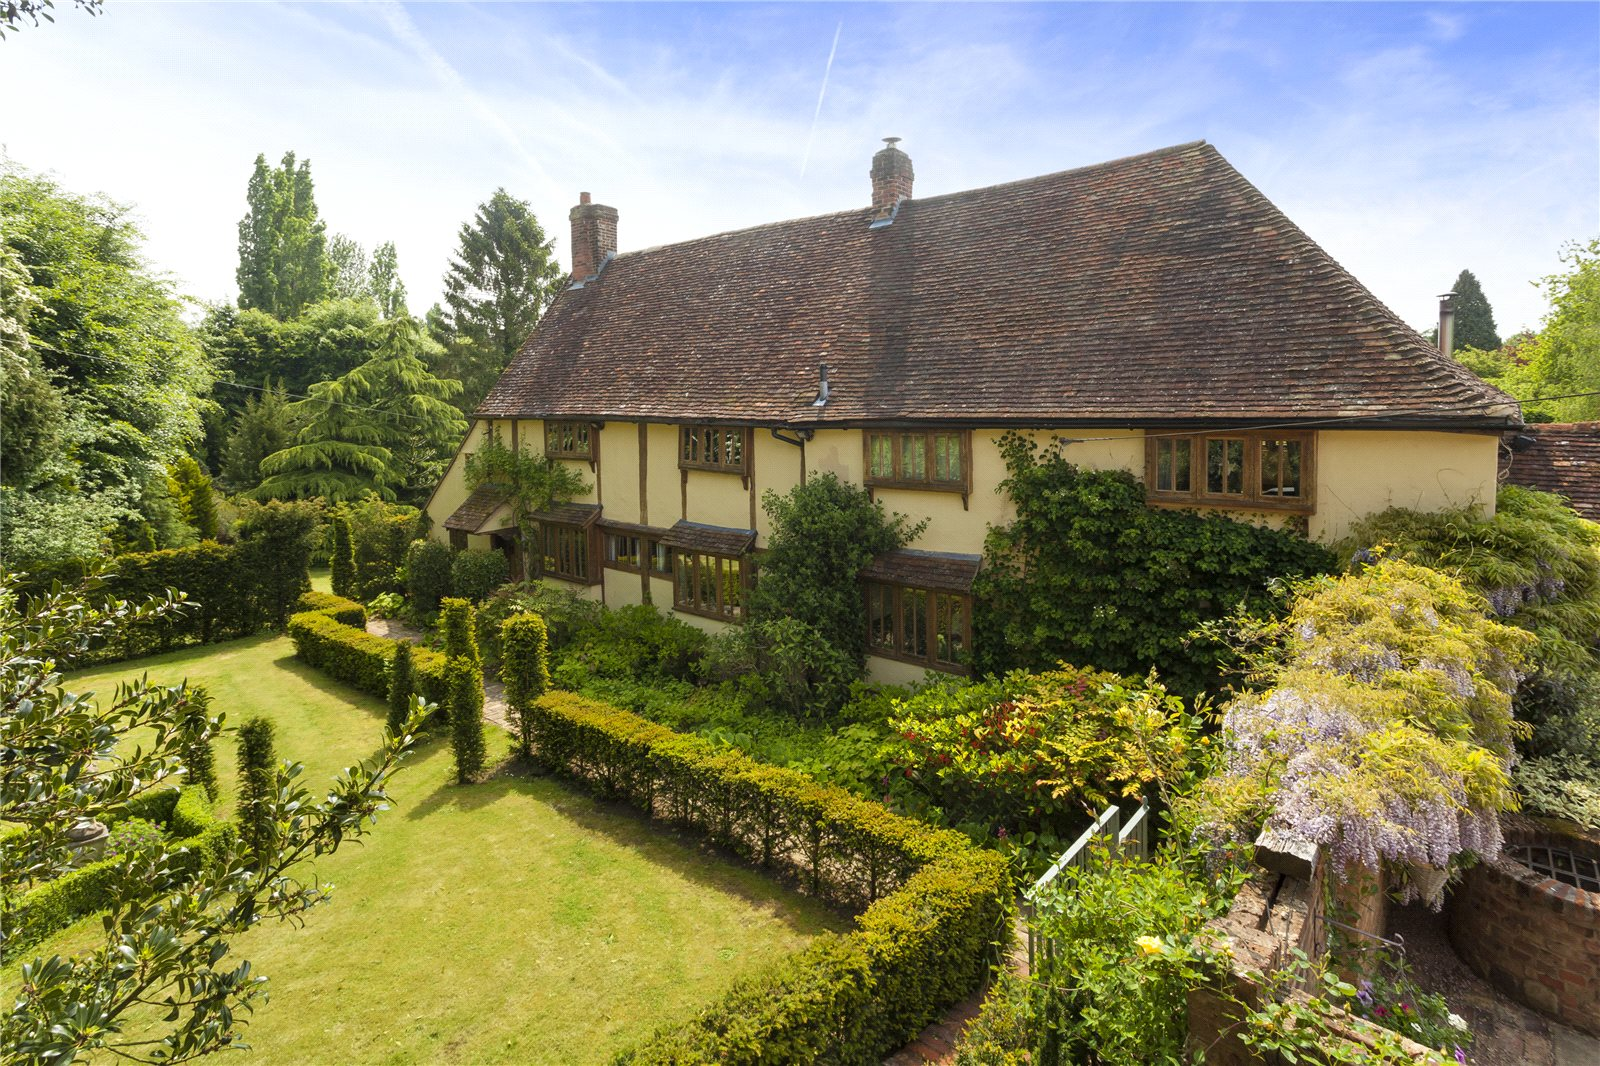 一戸建て のために 売買 アット Mill House Lane, Addington,West Malling, Nr Sevenoaks, Kent, ME19 Kent, イギリス